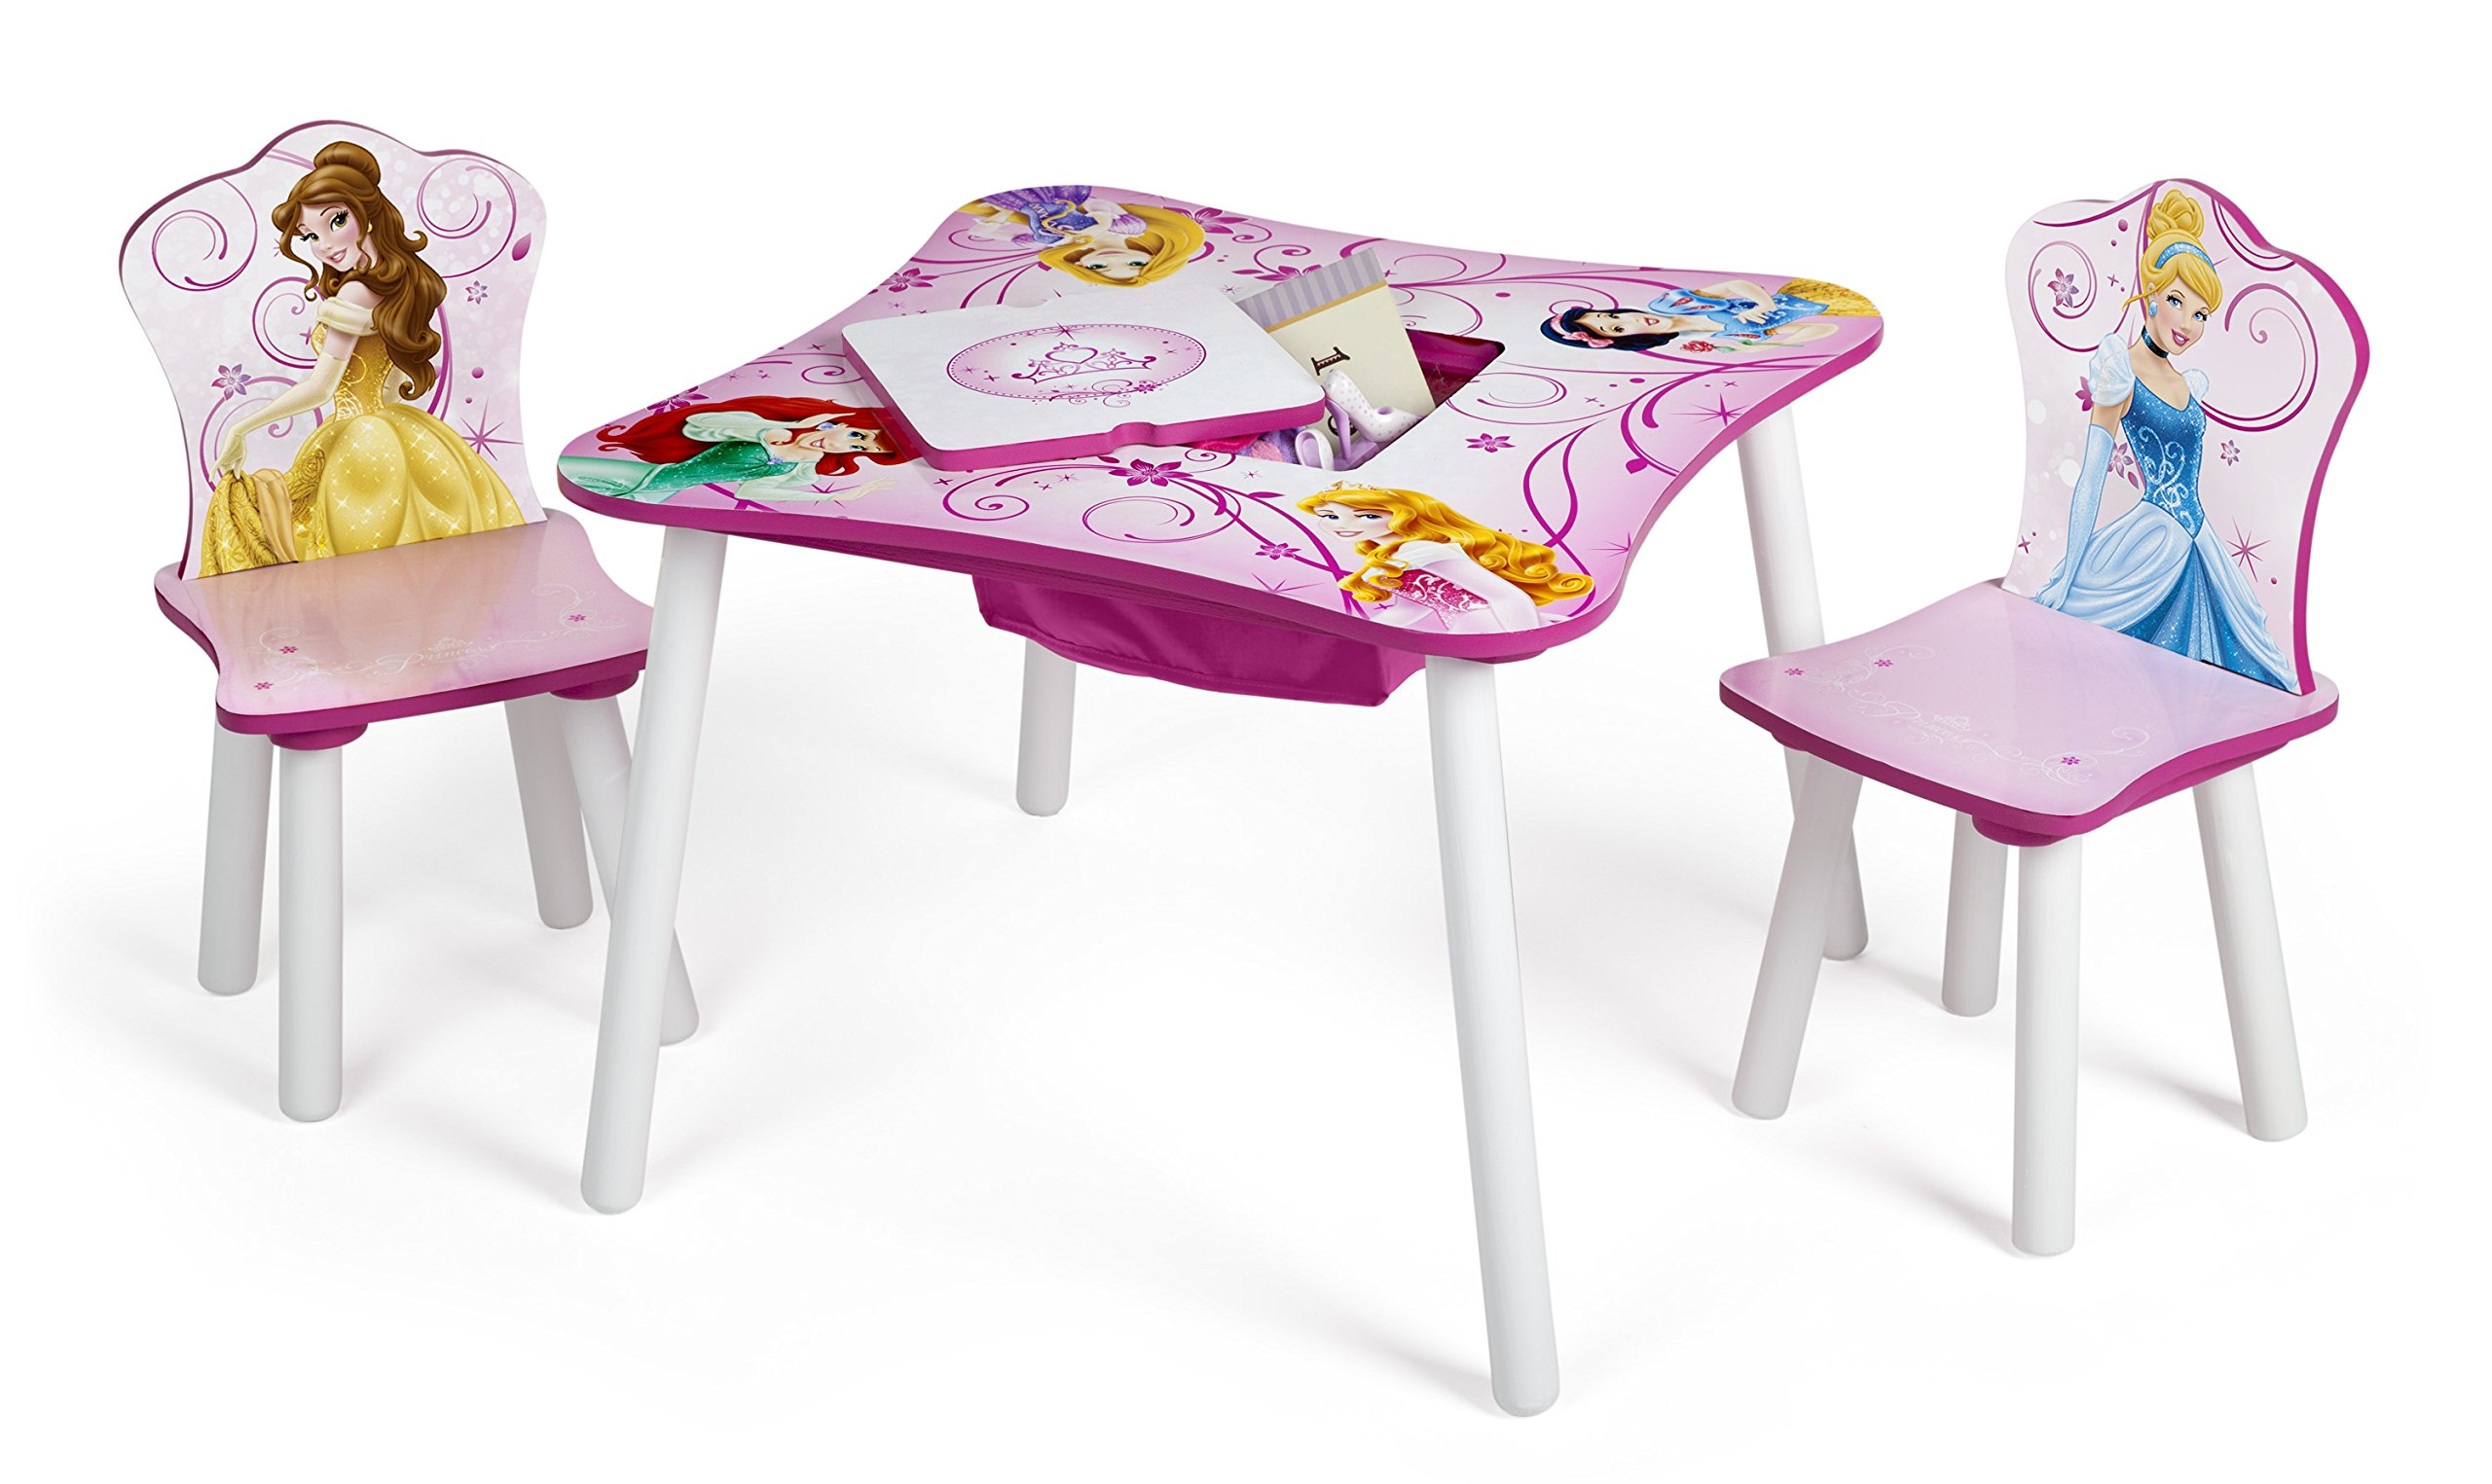 Princess Chairs For Toddlers Delta Children Table And Chair Set With Storage Disney